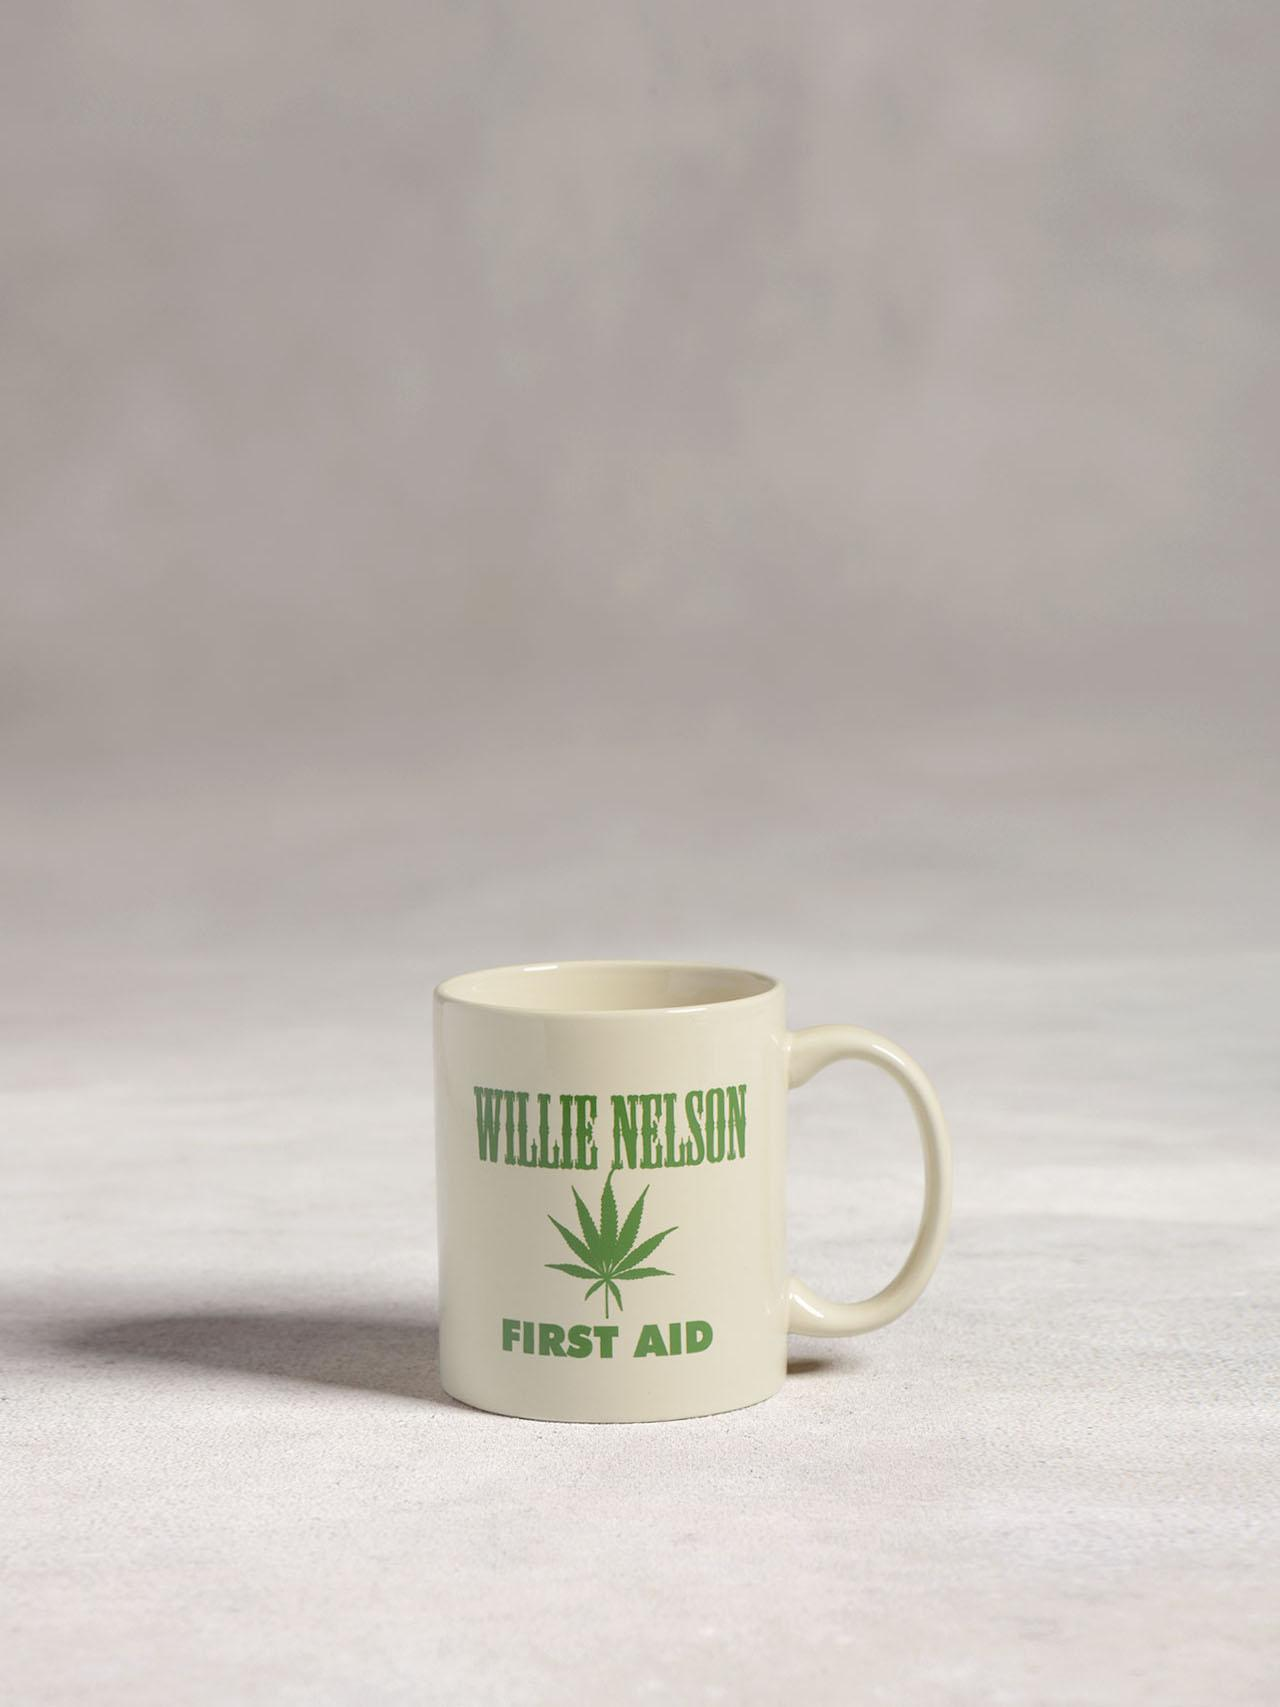 Willie Nelson First Aid Mug